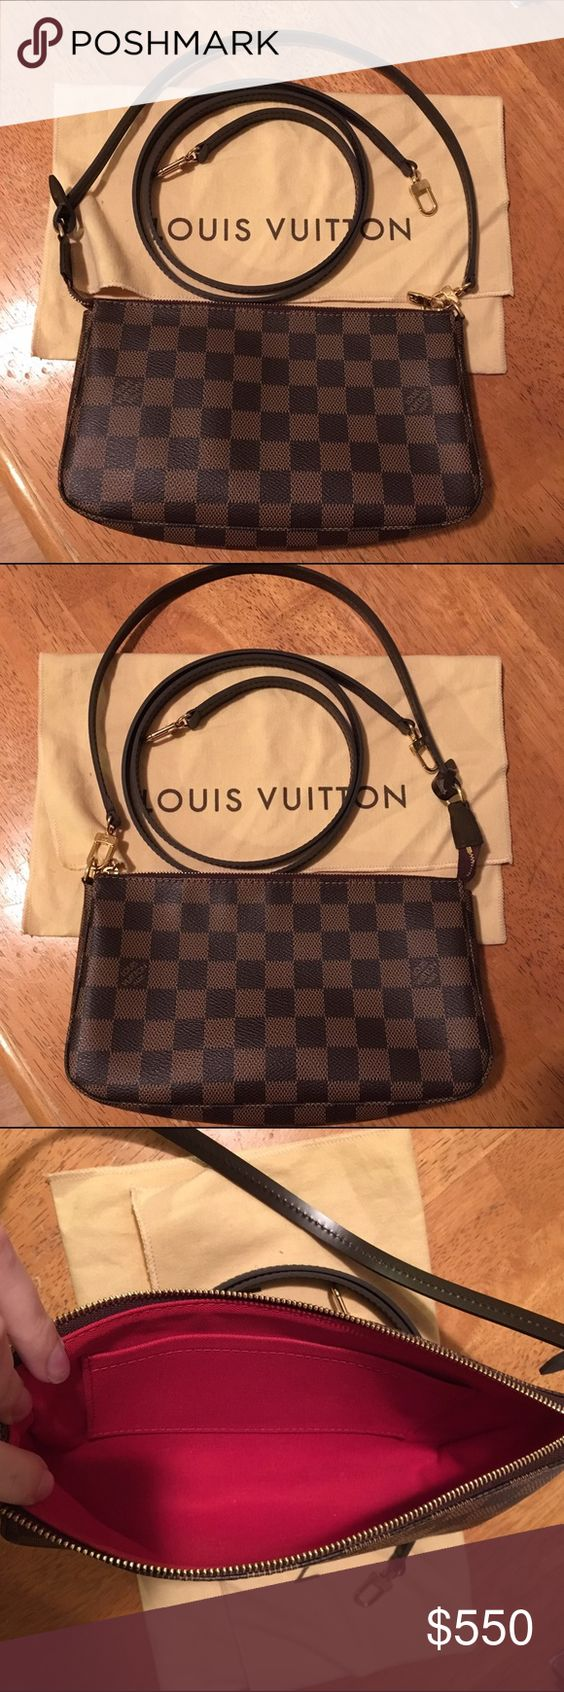 Louis Vuitton Pochette Accessories NM with Strap Damier Ebene Pochette Accessories NM & Longer Ebene Strap (non-adjustable)  Bag is in good preowned condition. Date code CA0133 Made in Spain. Extra strap also in good shape.  I've had both bag and strap authenticated on the Purse Forum, they were purchased separately so the hardware colors aren't an exact match to each other but both are authentic. The pochette comes with a dust bag. No box or receipt.  Price is firm. I don't want to separate…